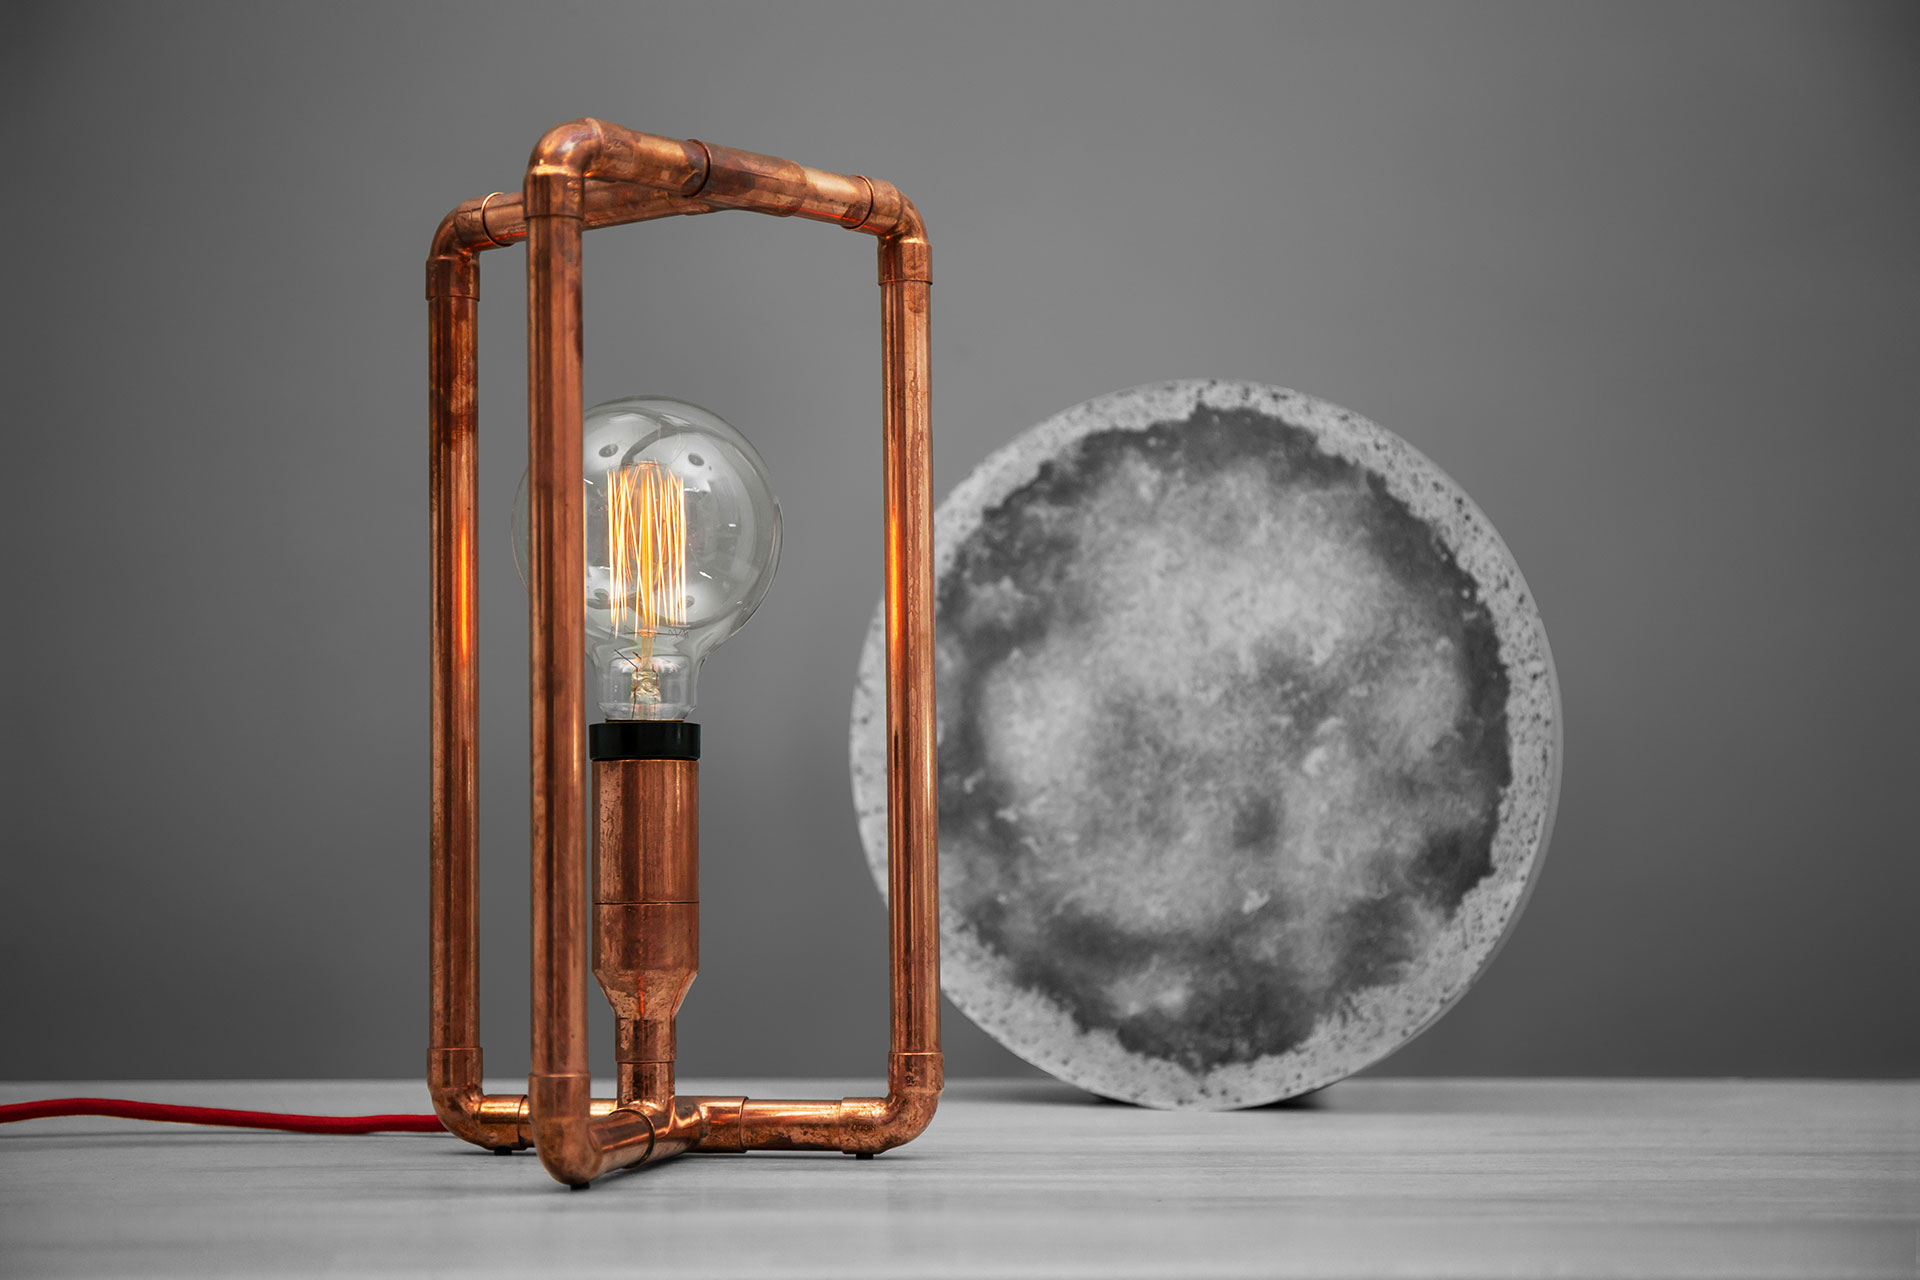 Unique copper table lamp with magic touch dimmer and vintage Edison bulb inspired by loft design